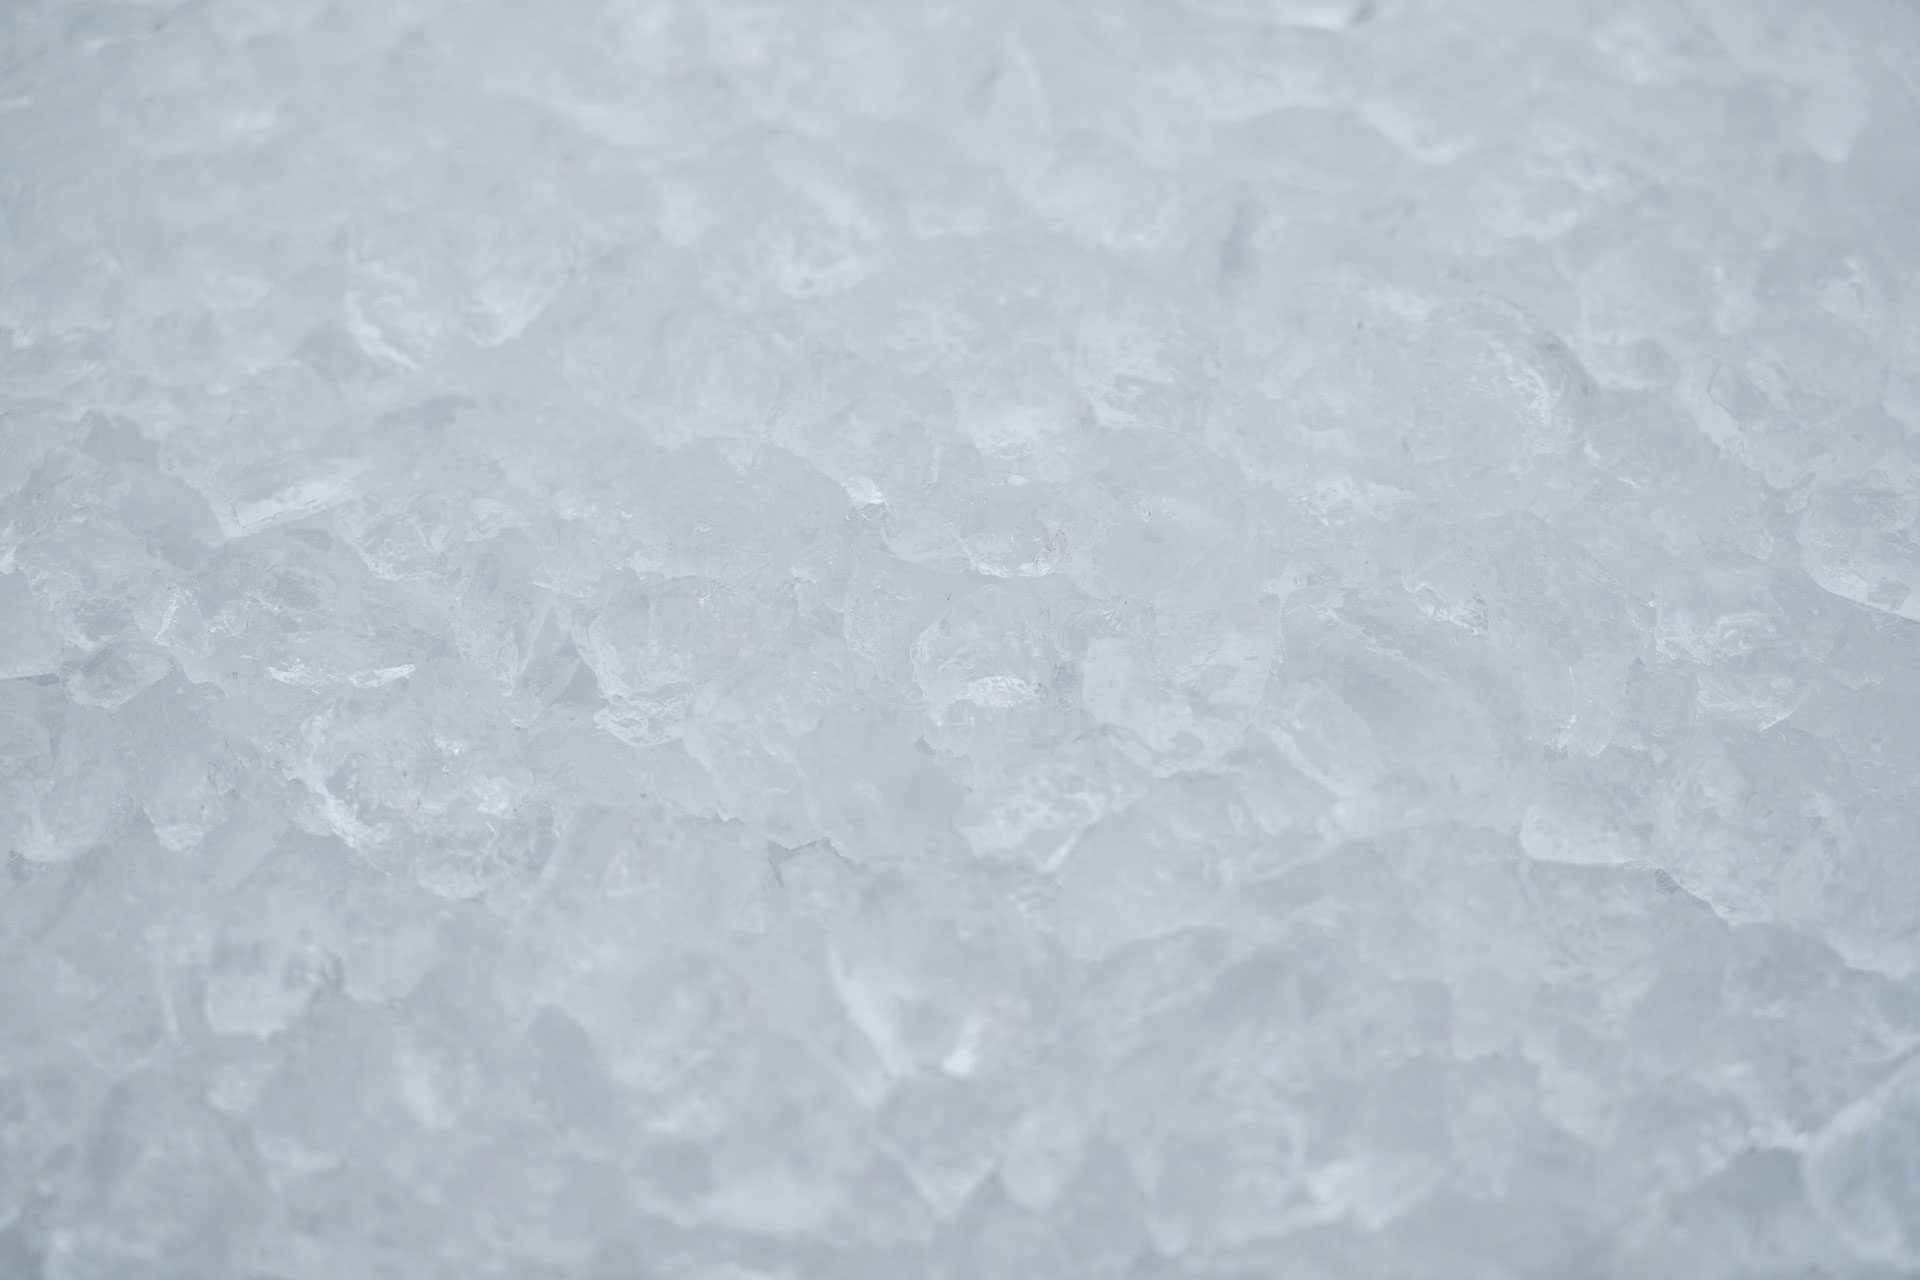 Is Ice On The Interior Refrigerator Wall Normal?